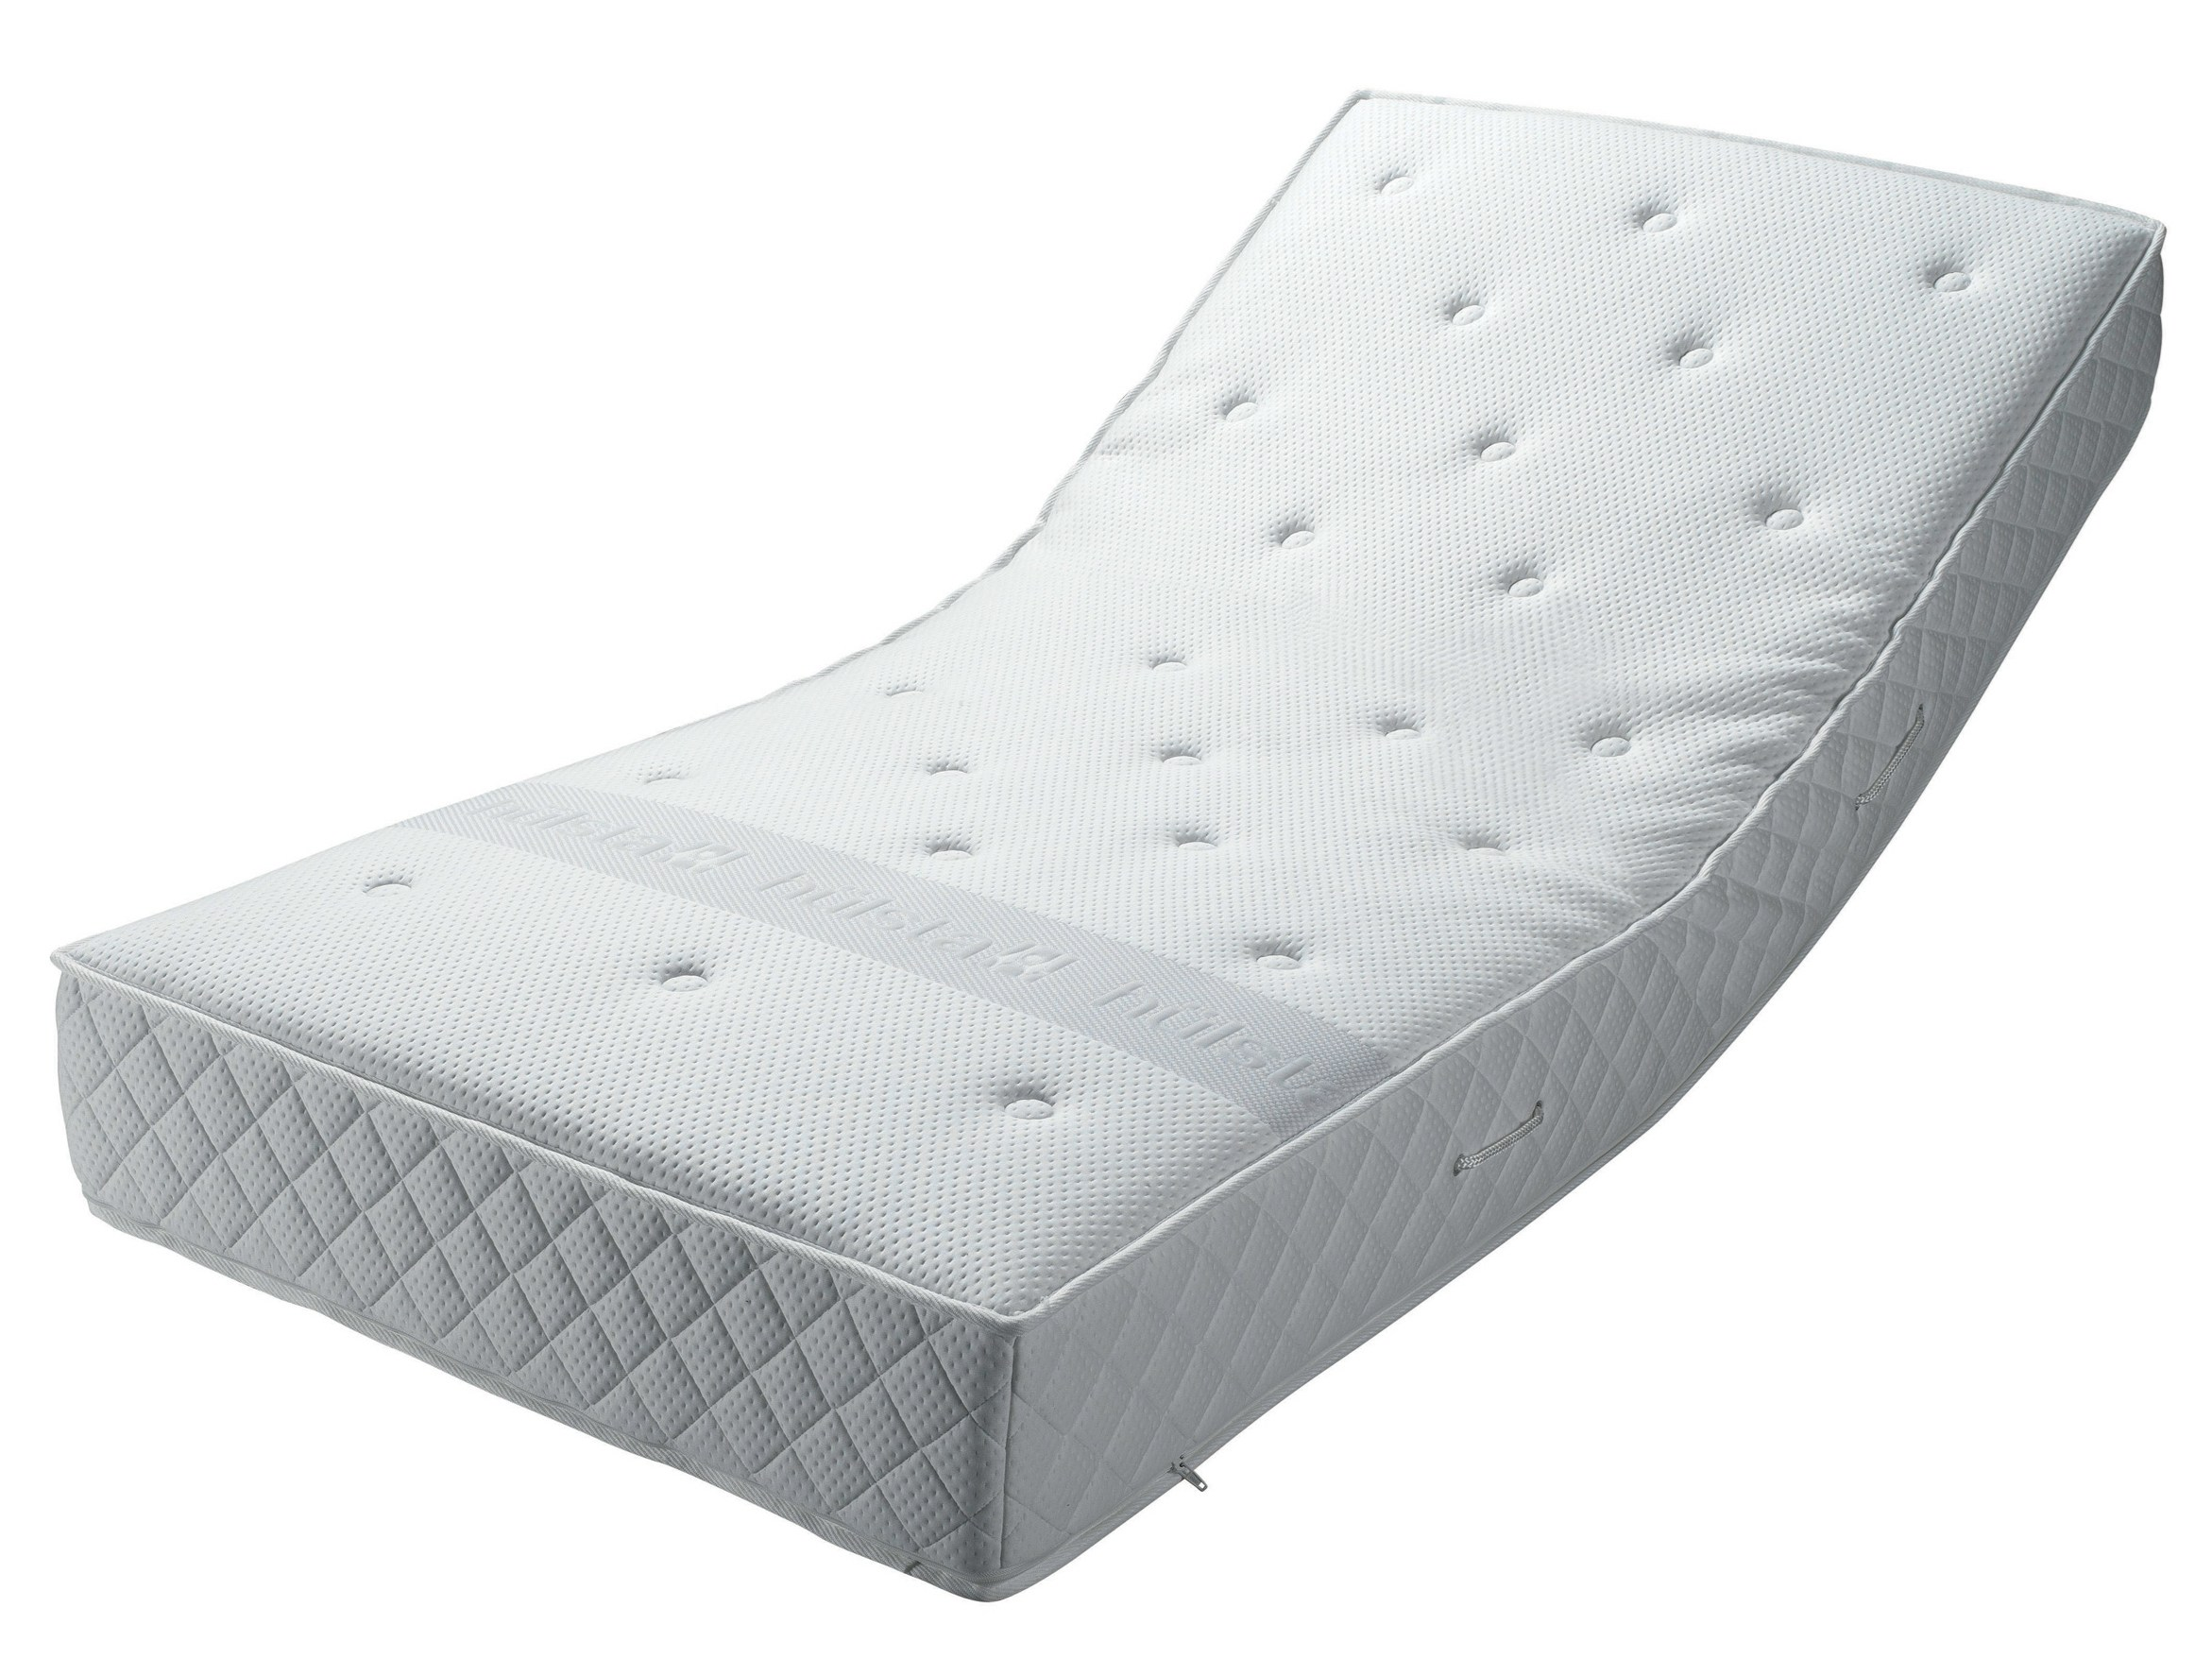 Polyurethane Foam Mattress : Packed springs anti allergy polyurethane foam mattress top